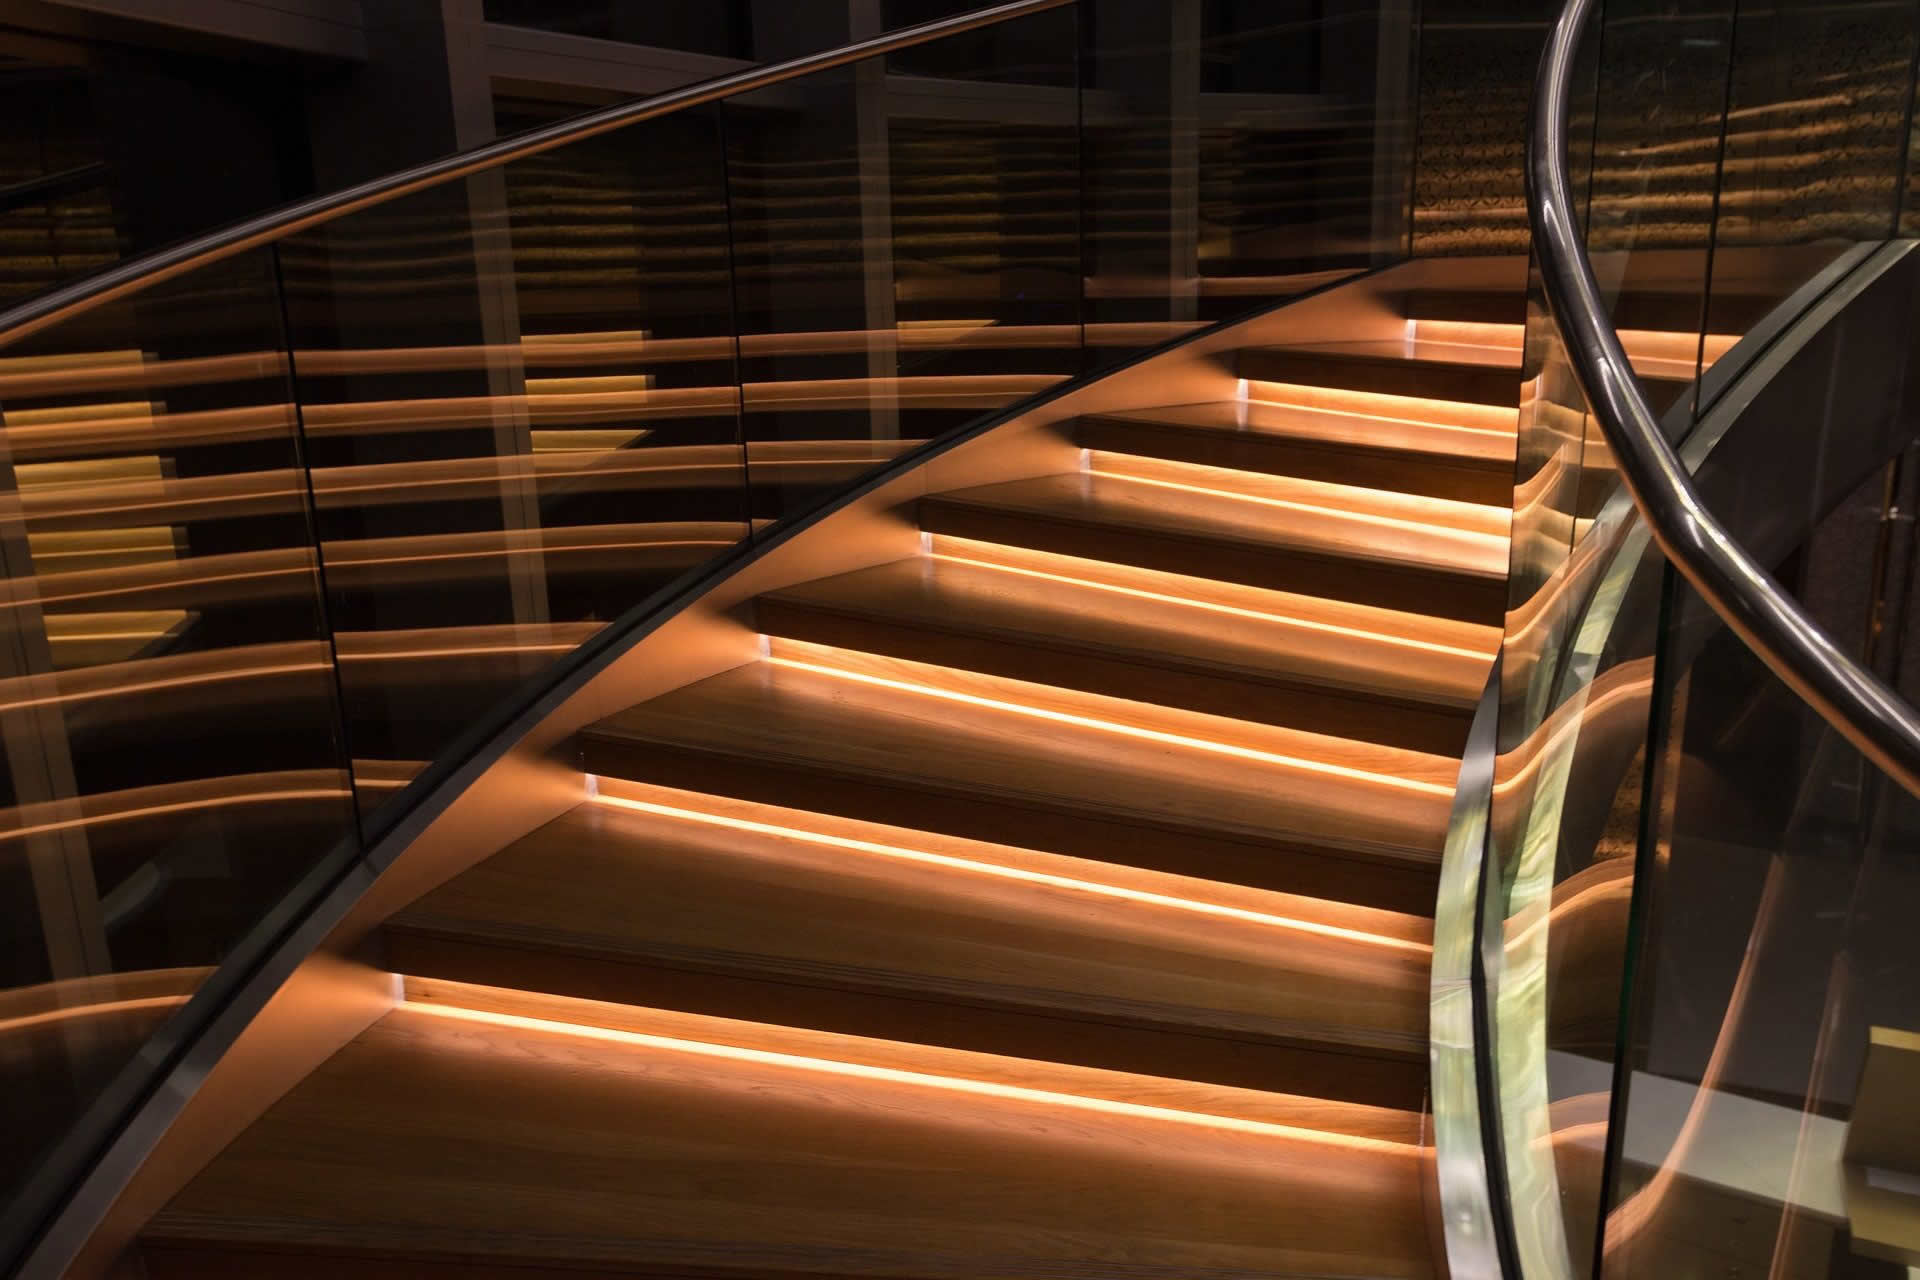 Important aspects to consider when illuminating stairs/steps, and around swimming pools.